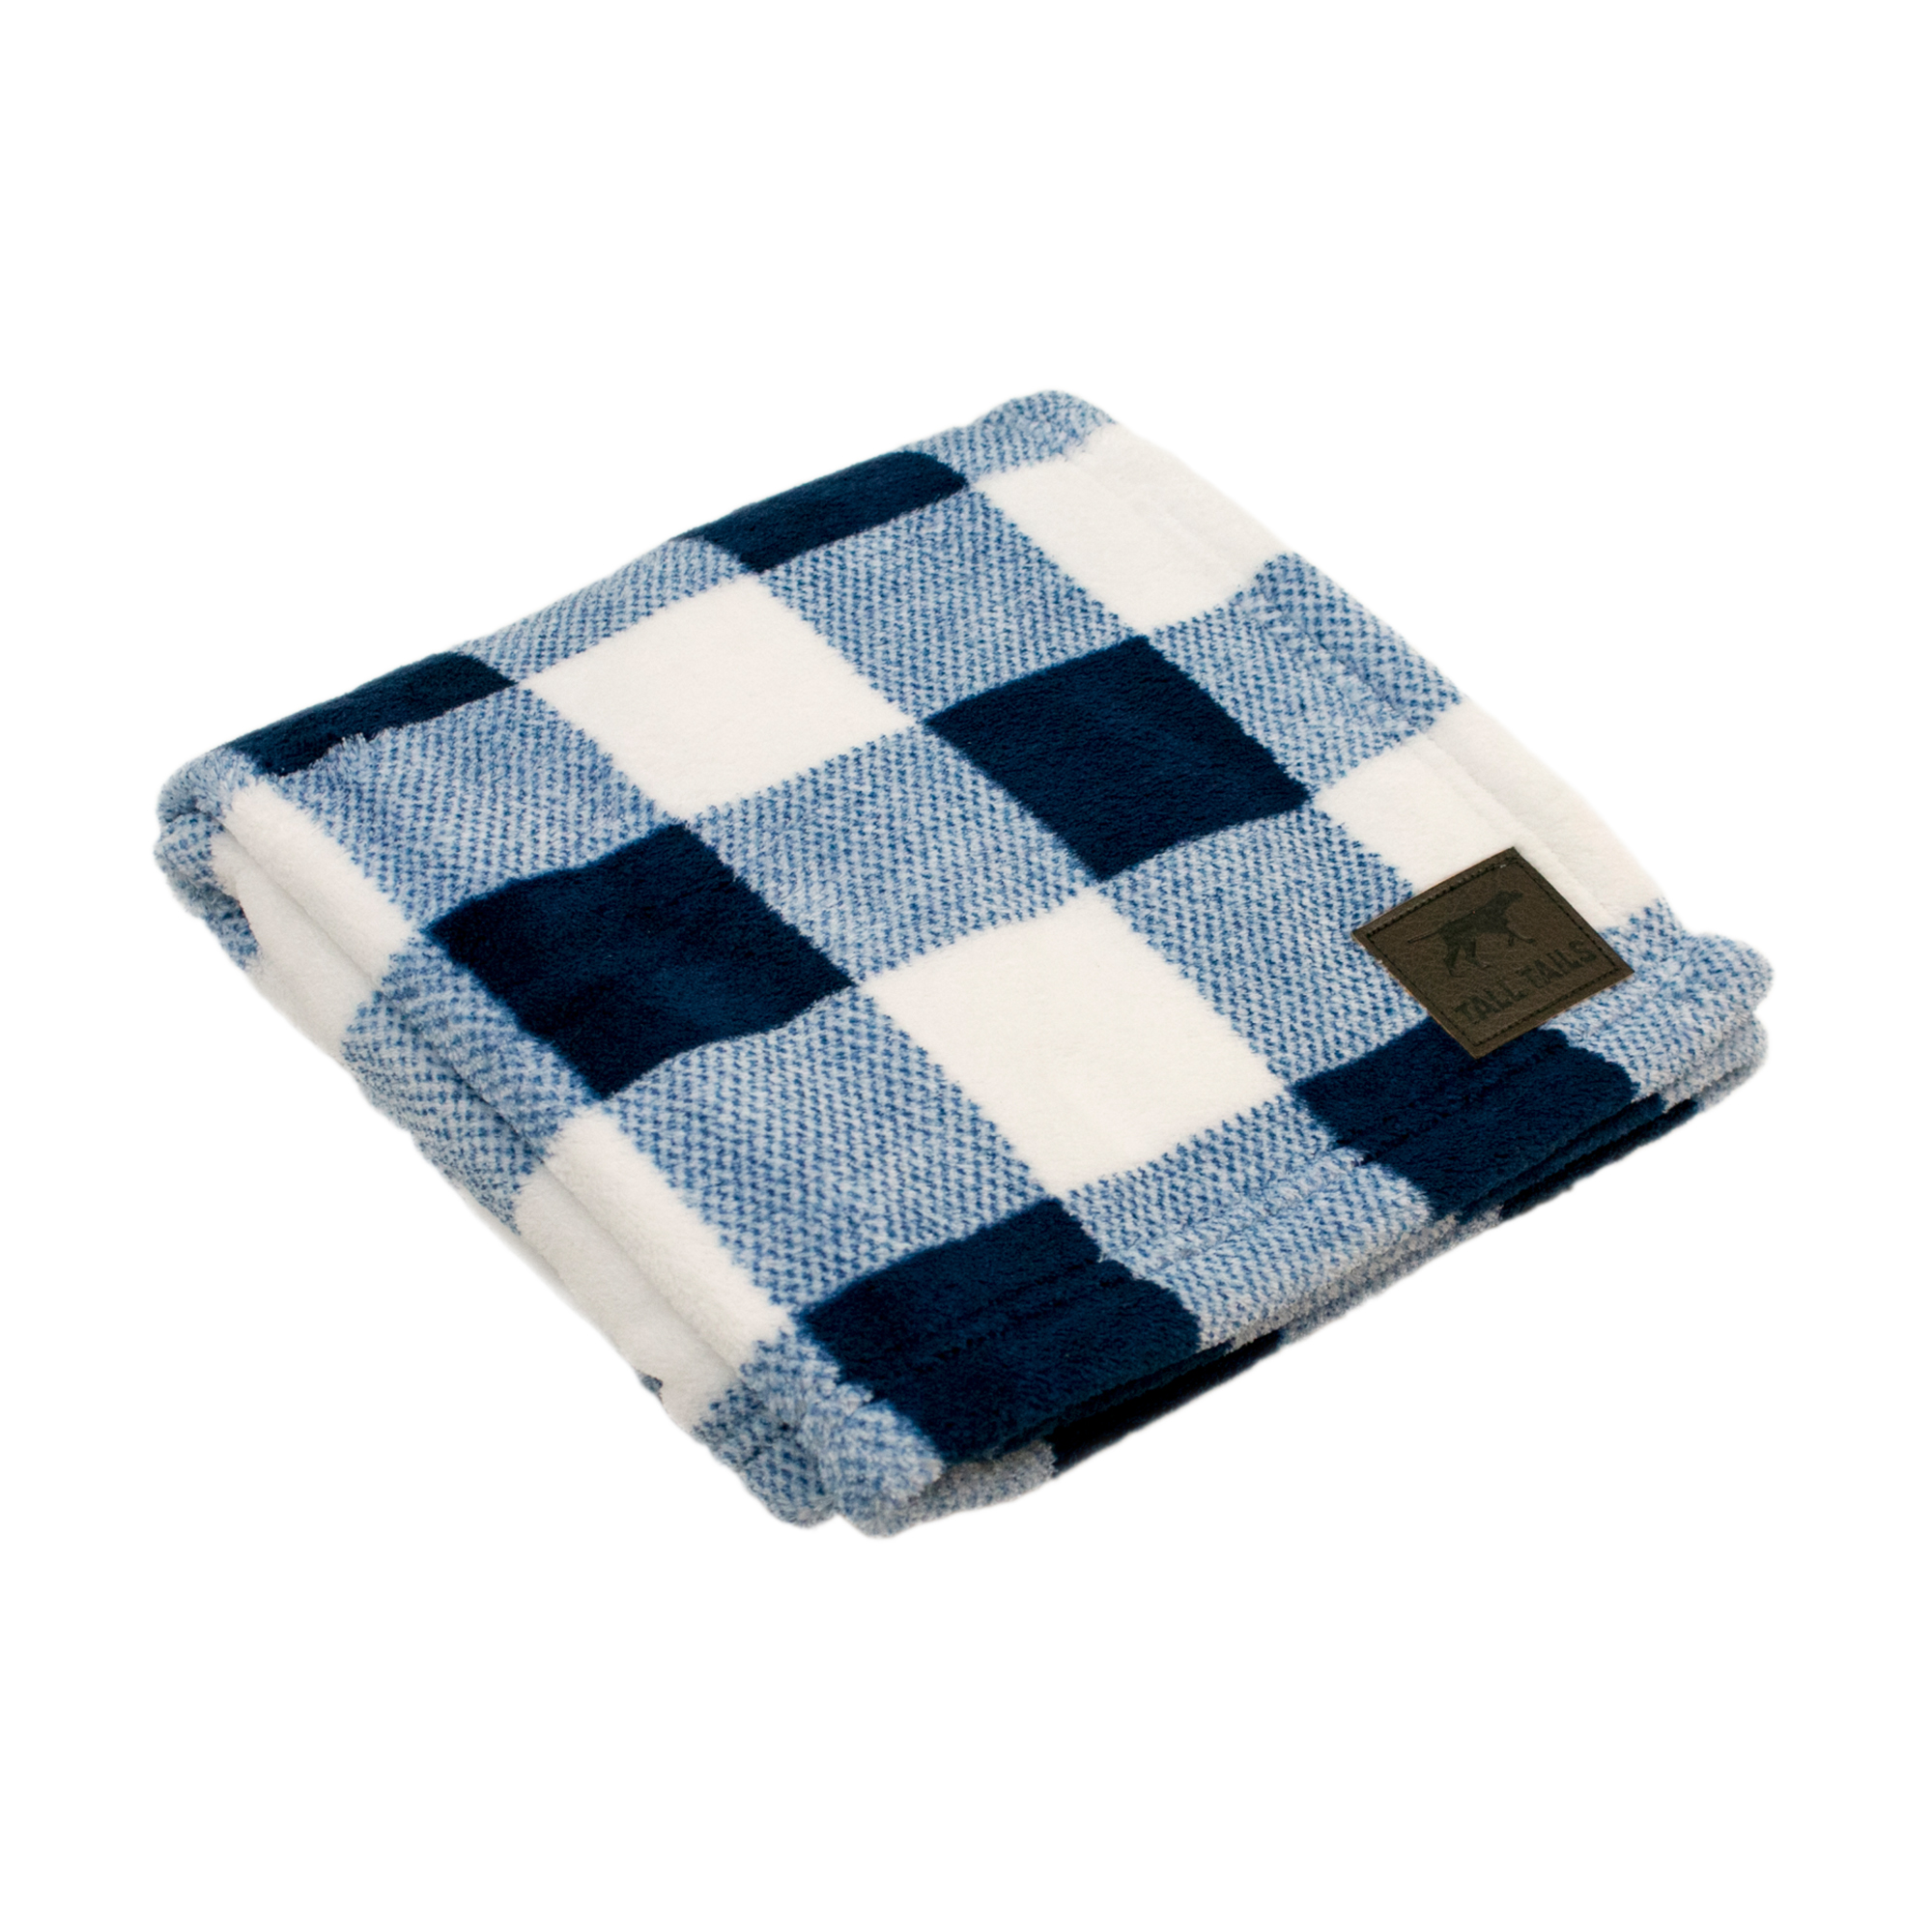 Tall Tails Hunter's Plaid Dog Blanket, Navy, 30x40